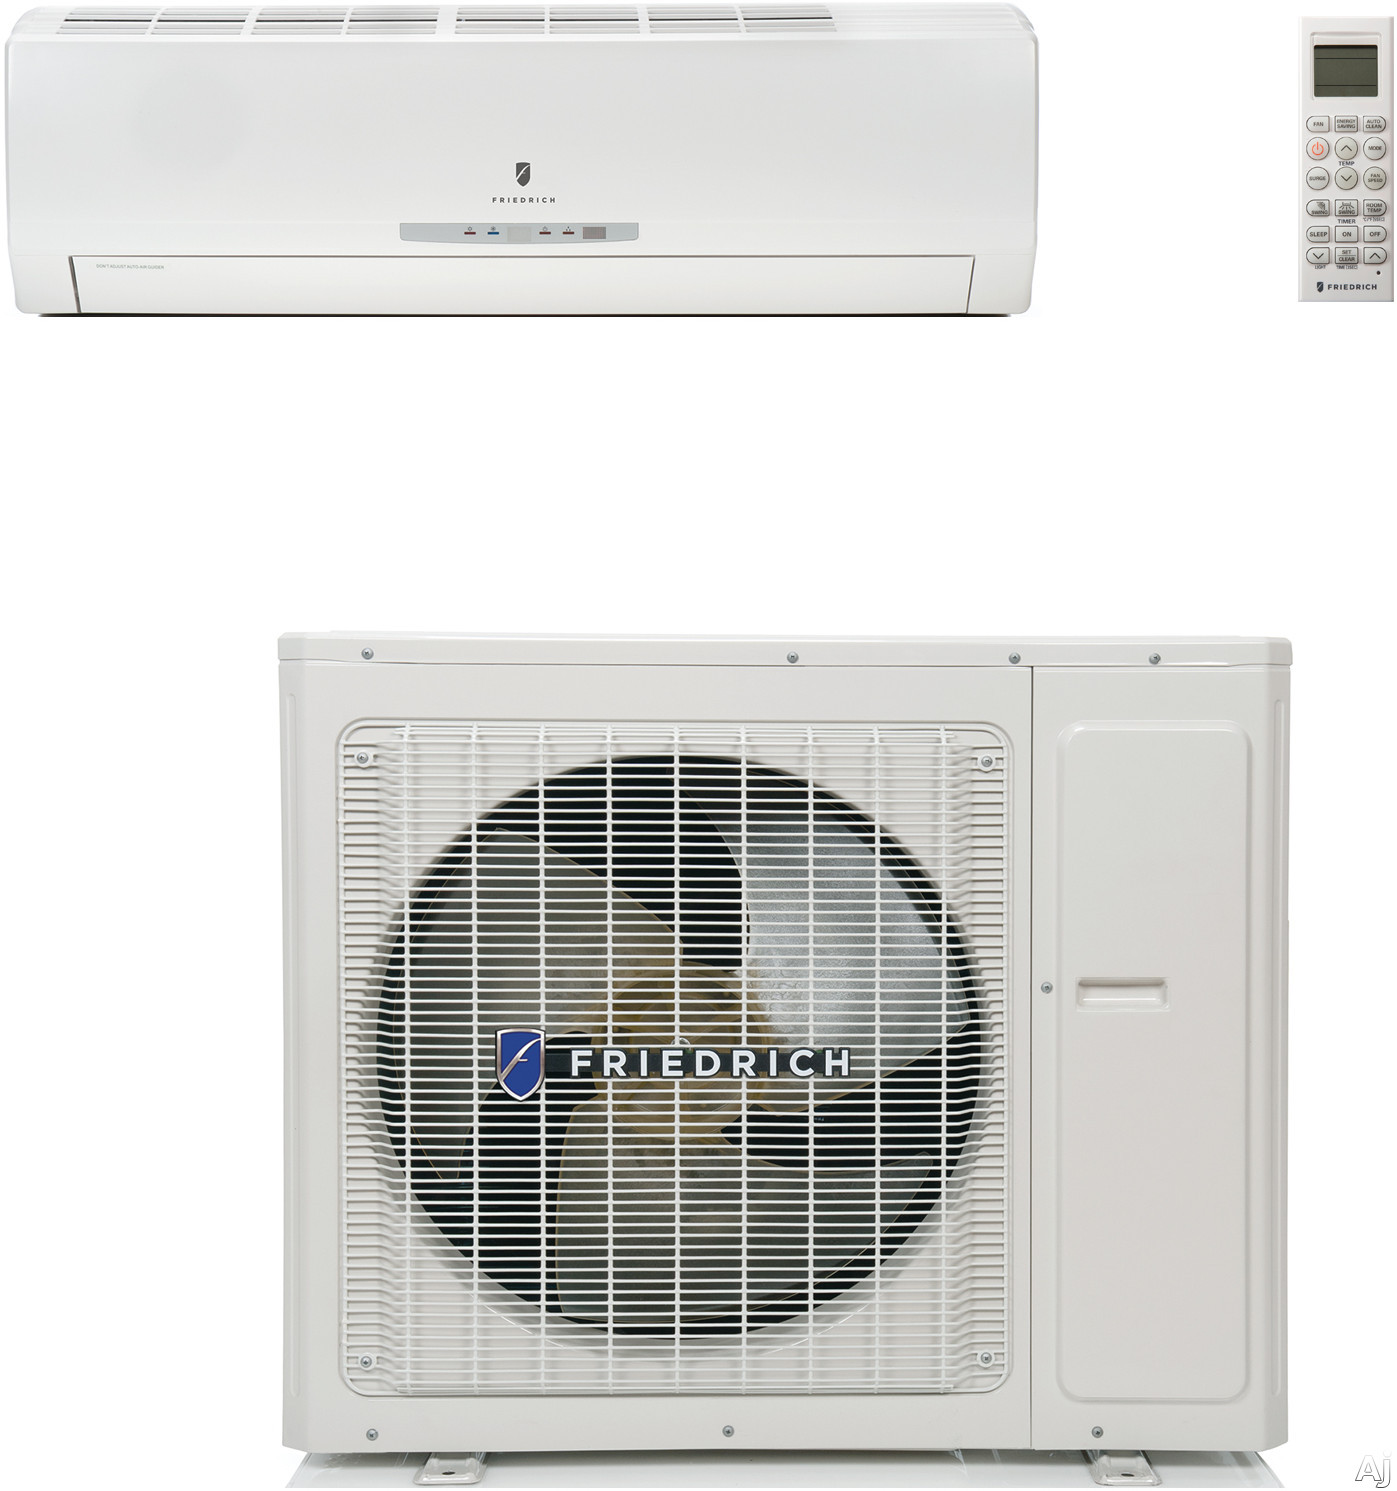 Home > Air Conditioners > Mini Split Air Conditioners > BR1224W3A #284183